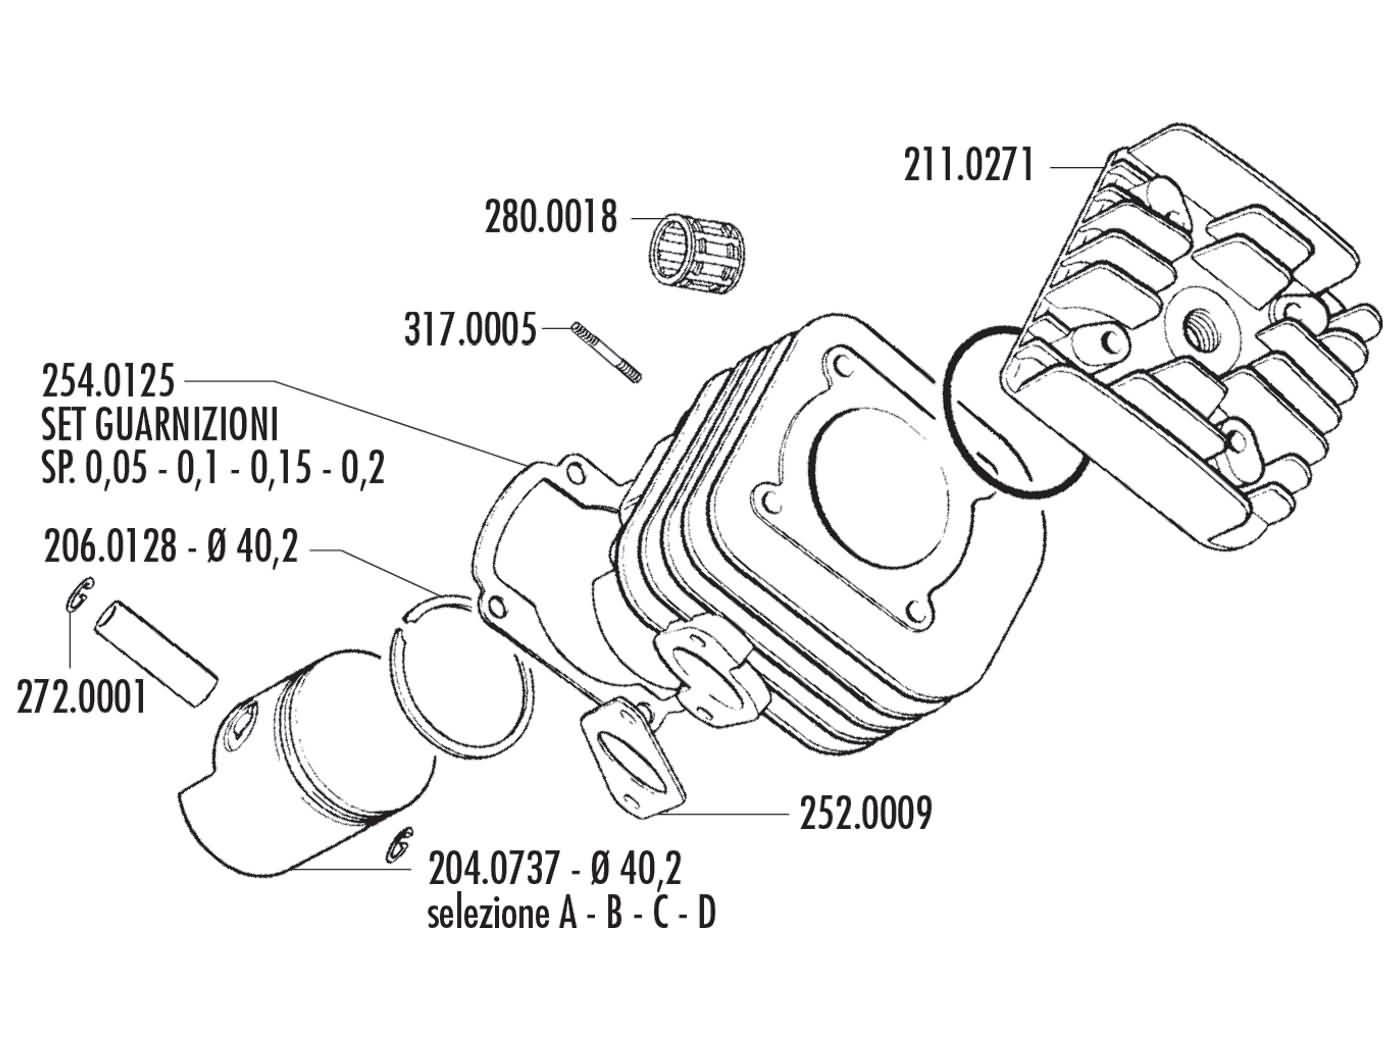 hight resolution of polini 50cc engine diagram 2005 wiring diagram paper polini 50cc engine diagram 2005